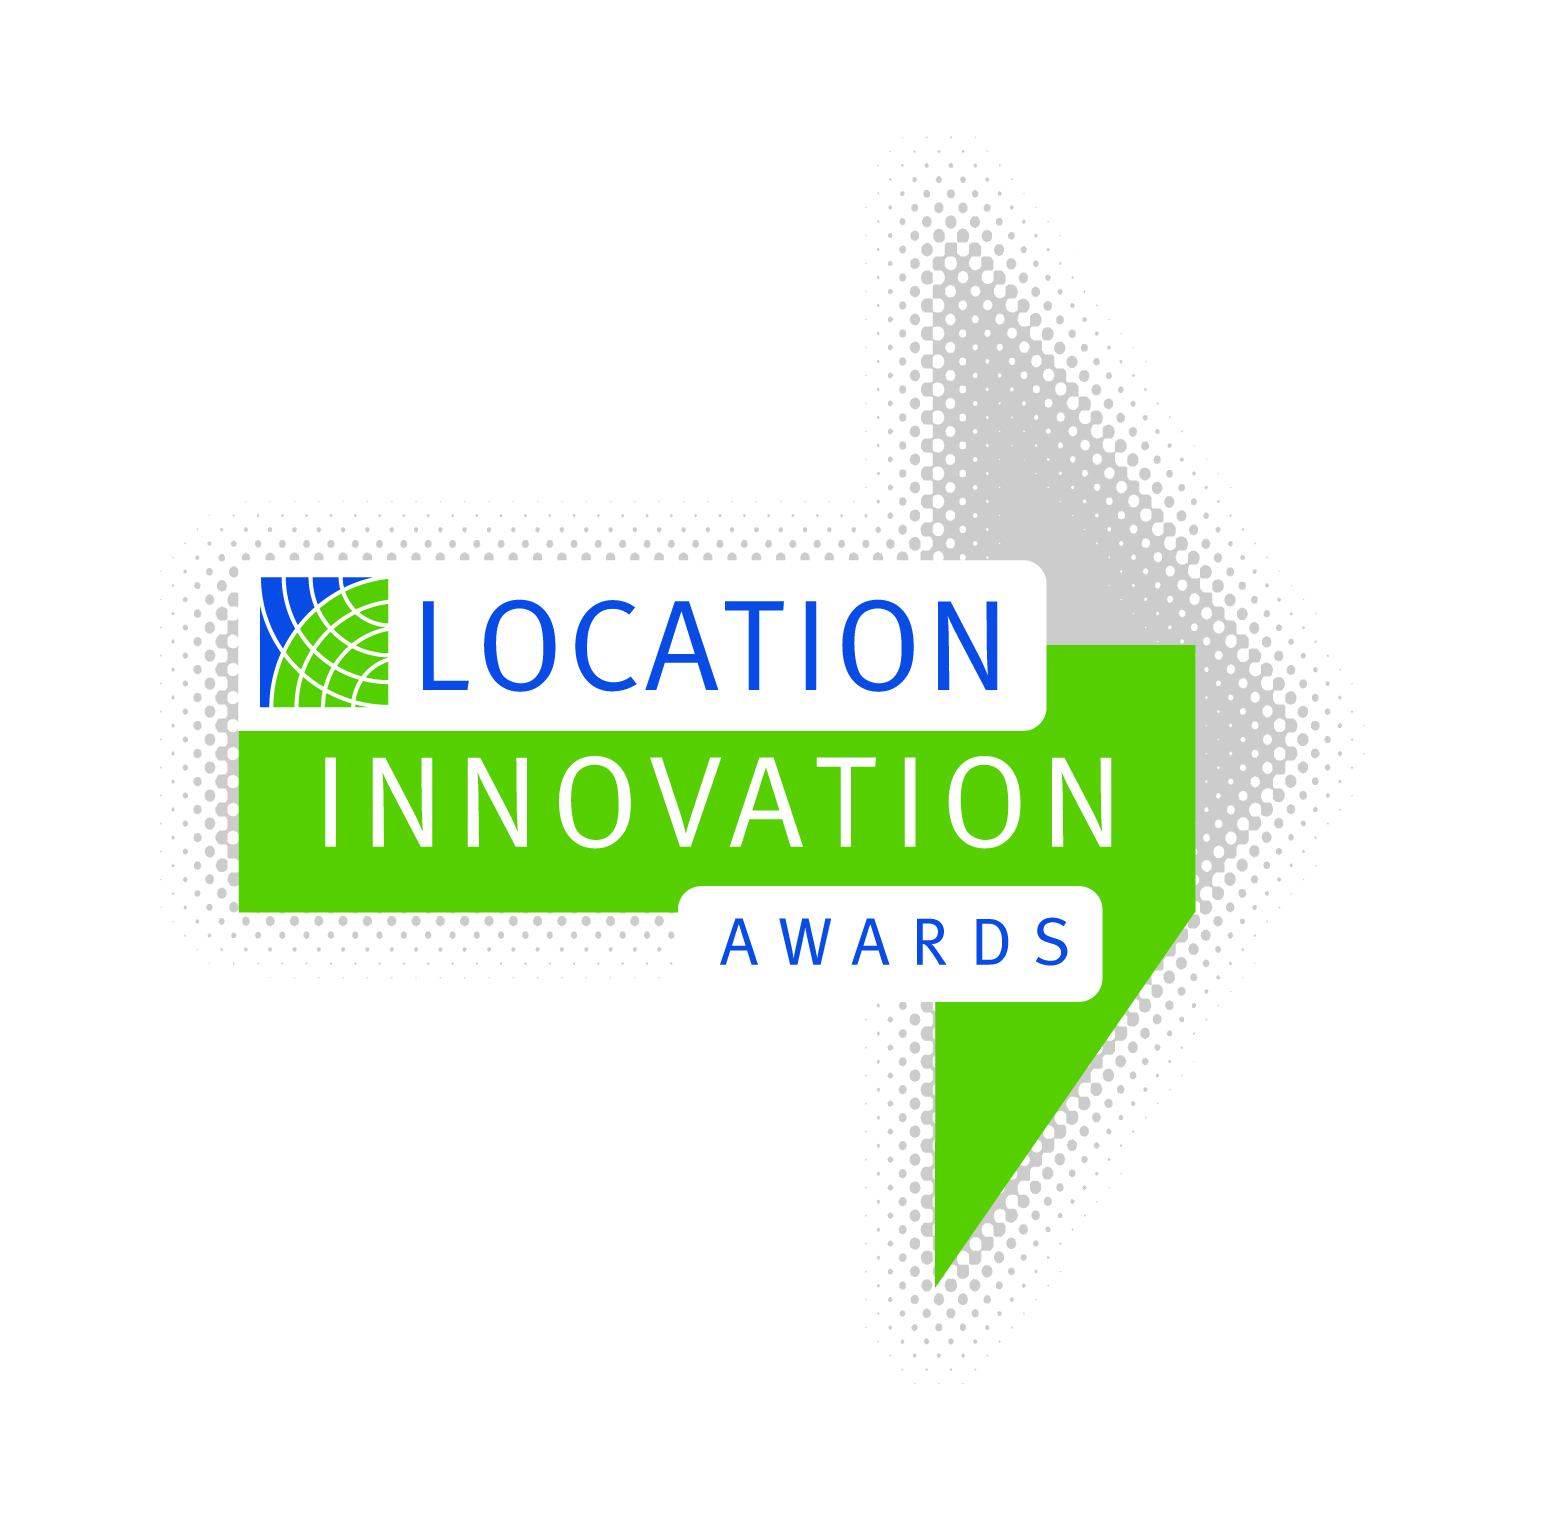 locationinnovation1